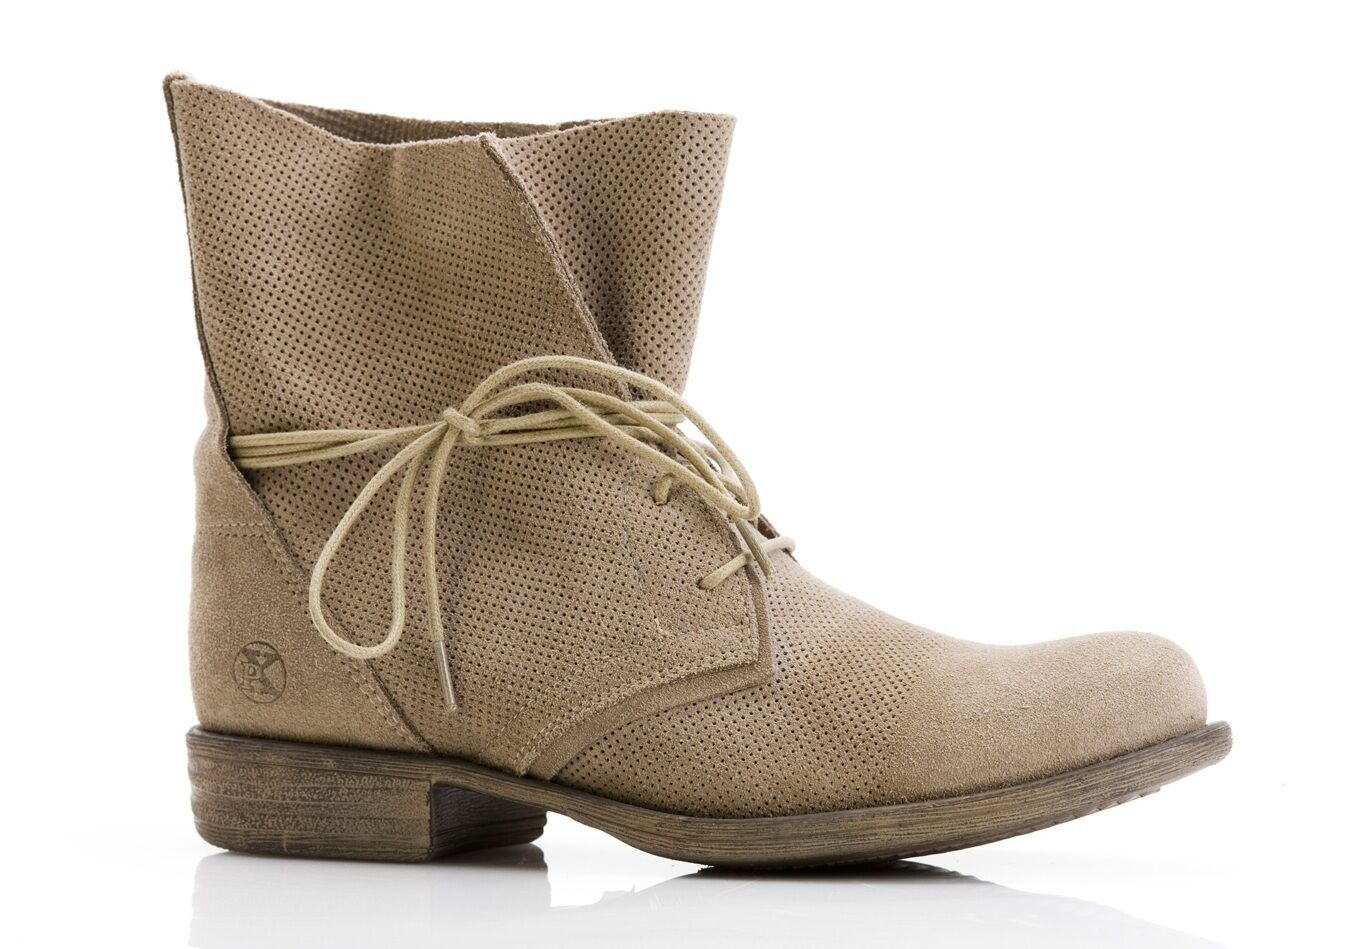 POST XCHANGE JESSY Mujer Cuero Natural Zapatos Stiefelette